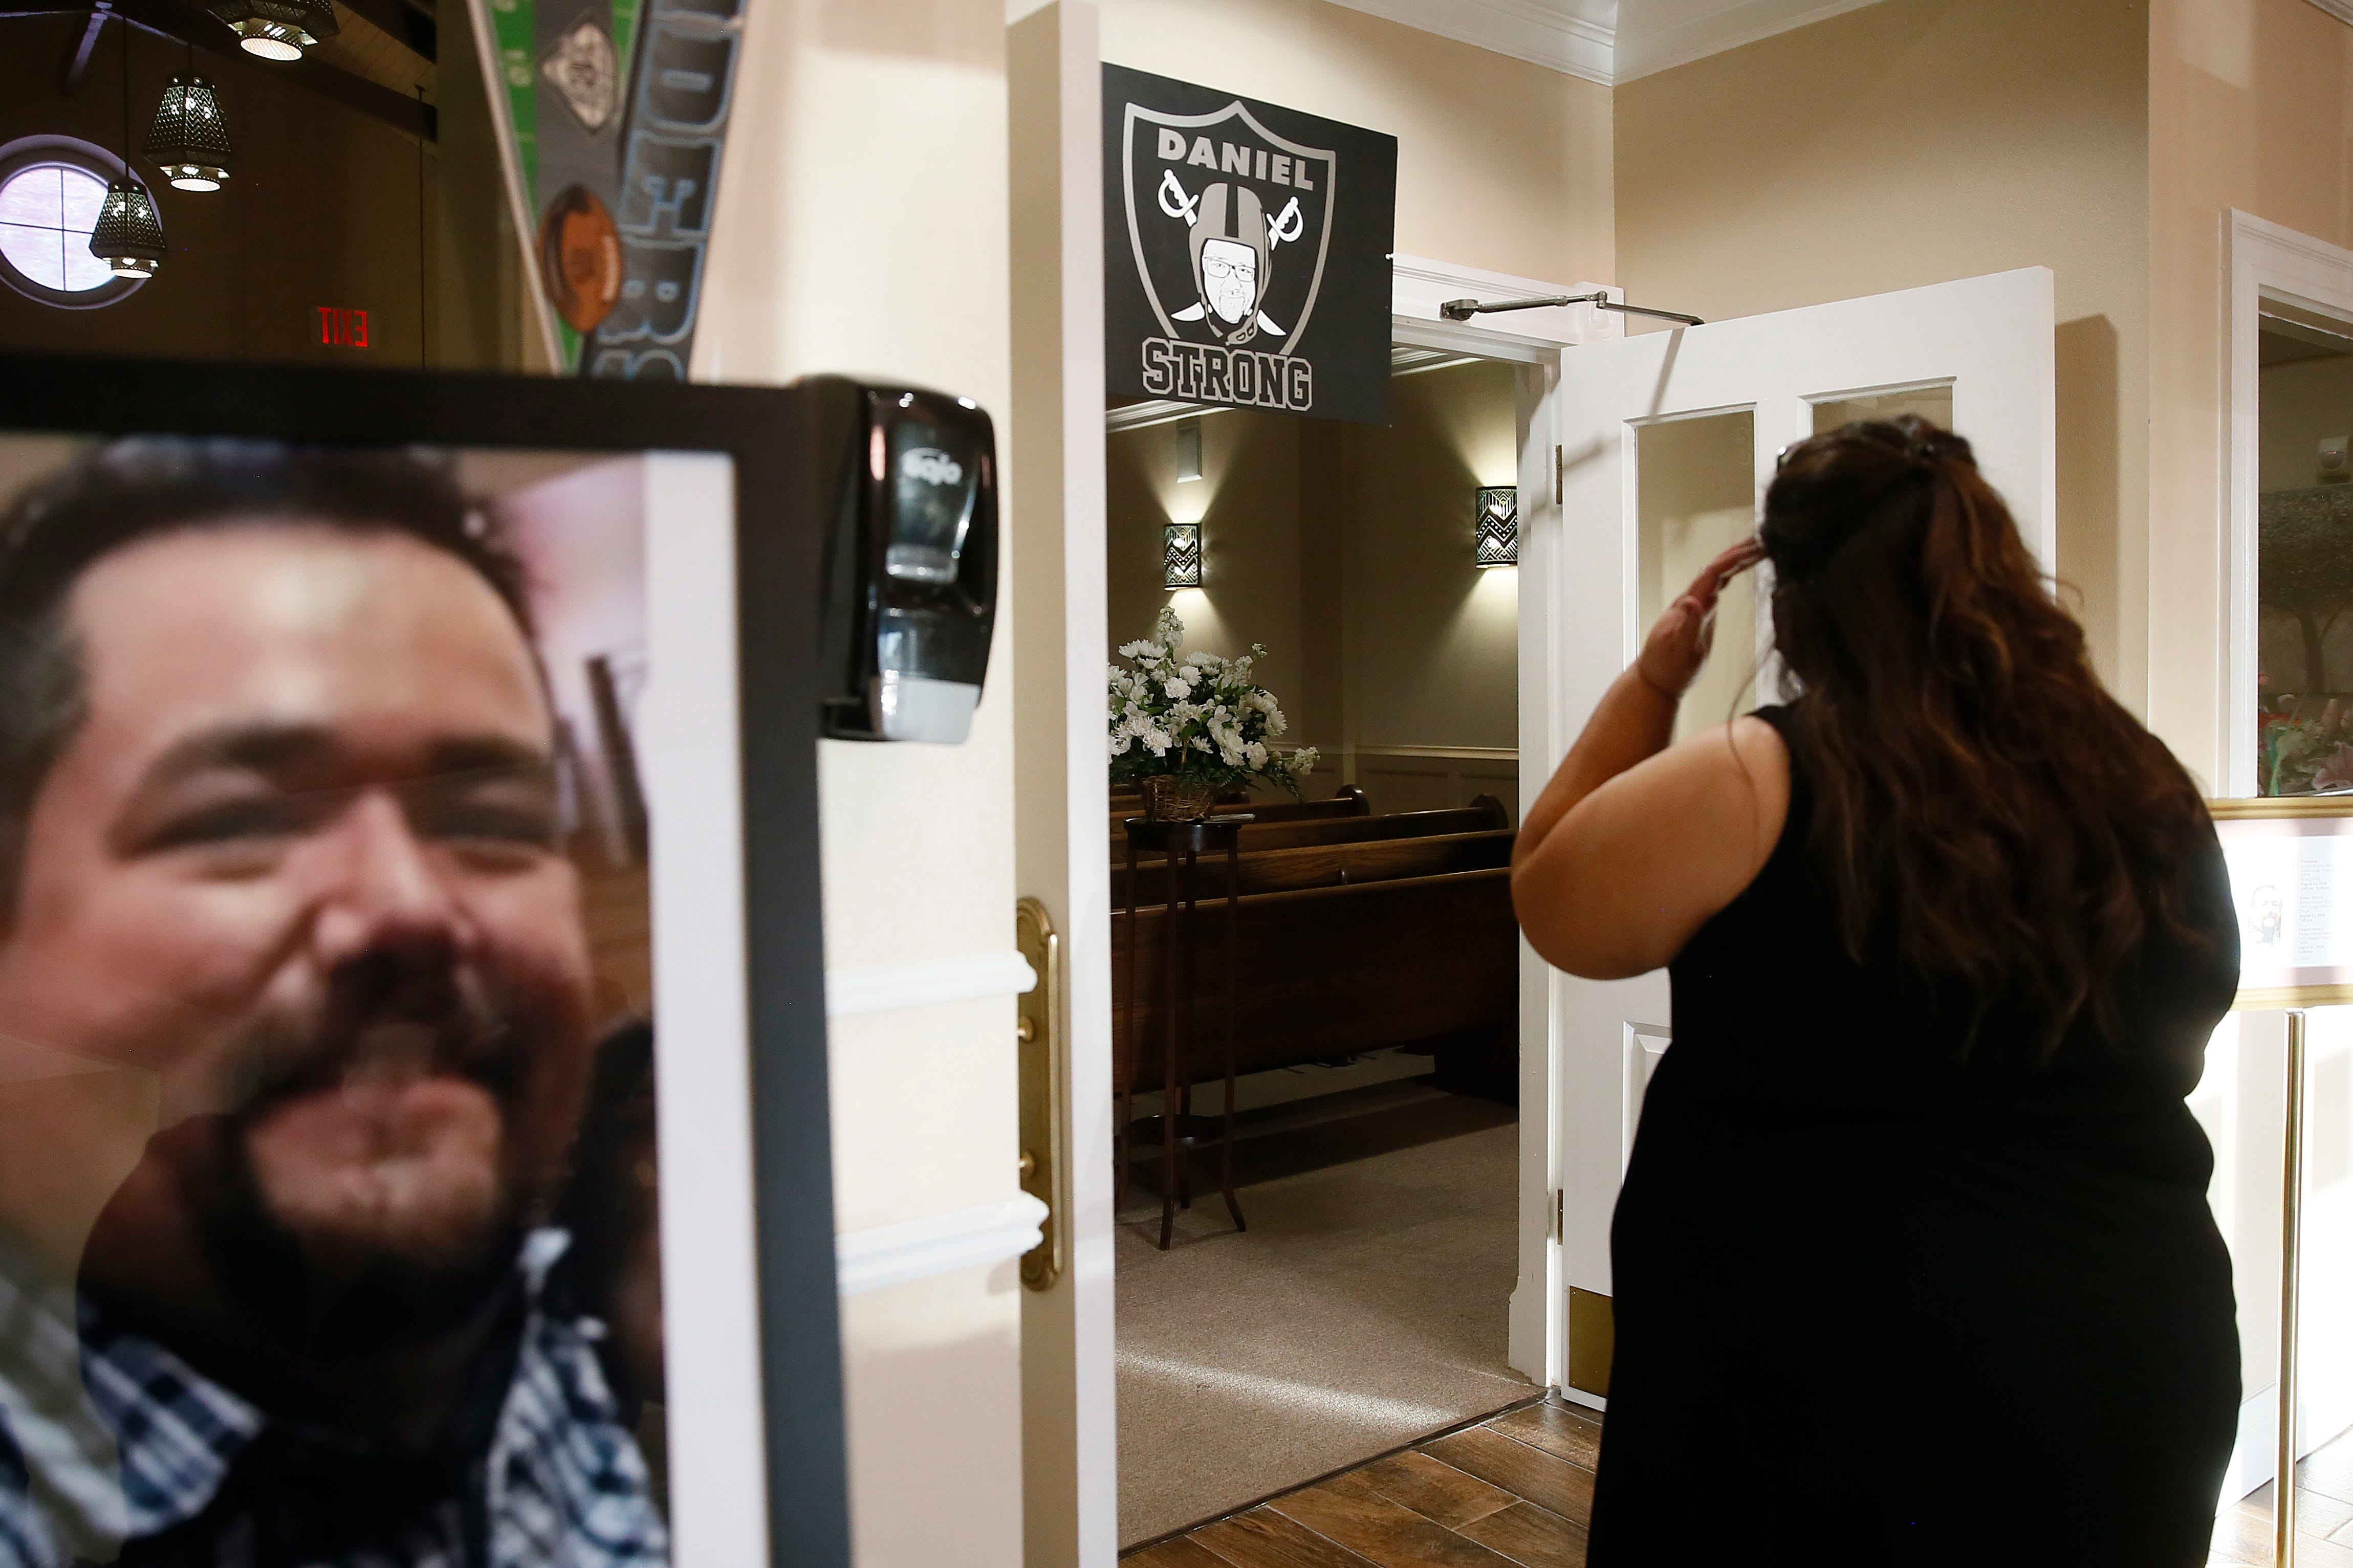 Erika Castor-Morales prepares to enter the prayer services for her husband Daniel Morales during his Celebration of Life on Aug. 12, 2020, at Martin Funeral Home in El Paso.